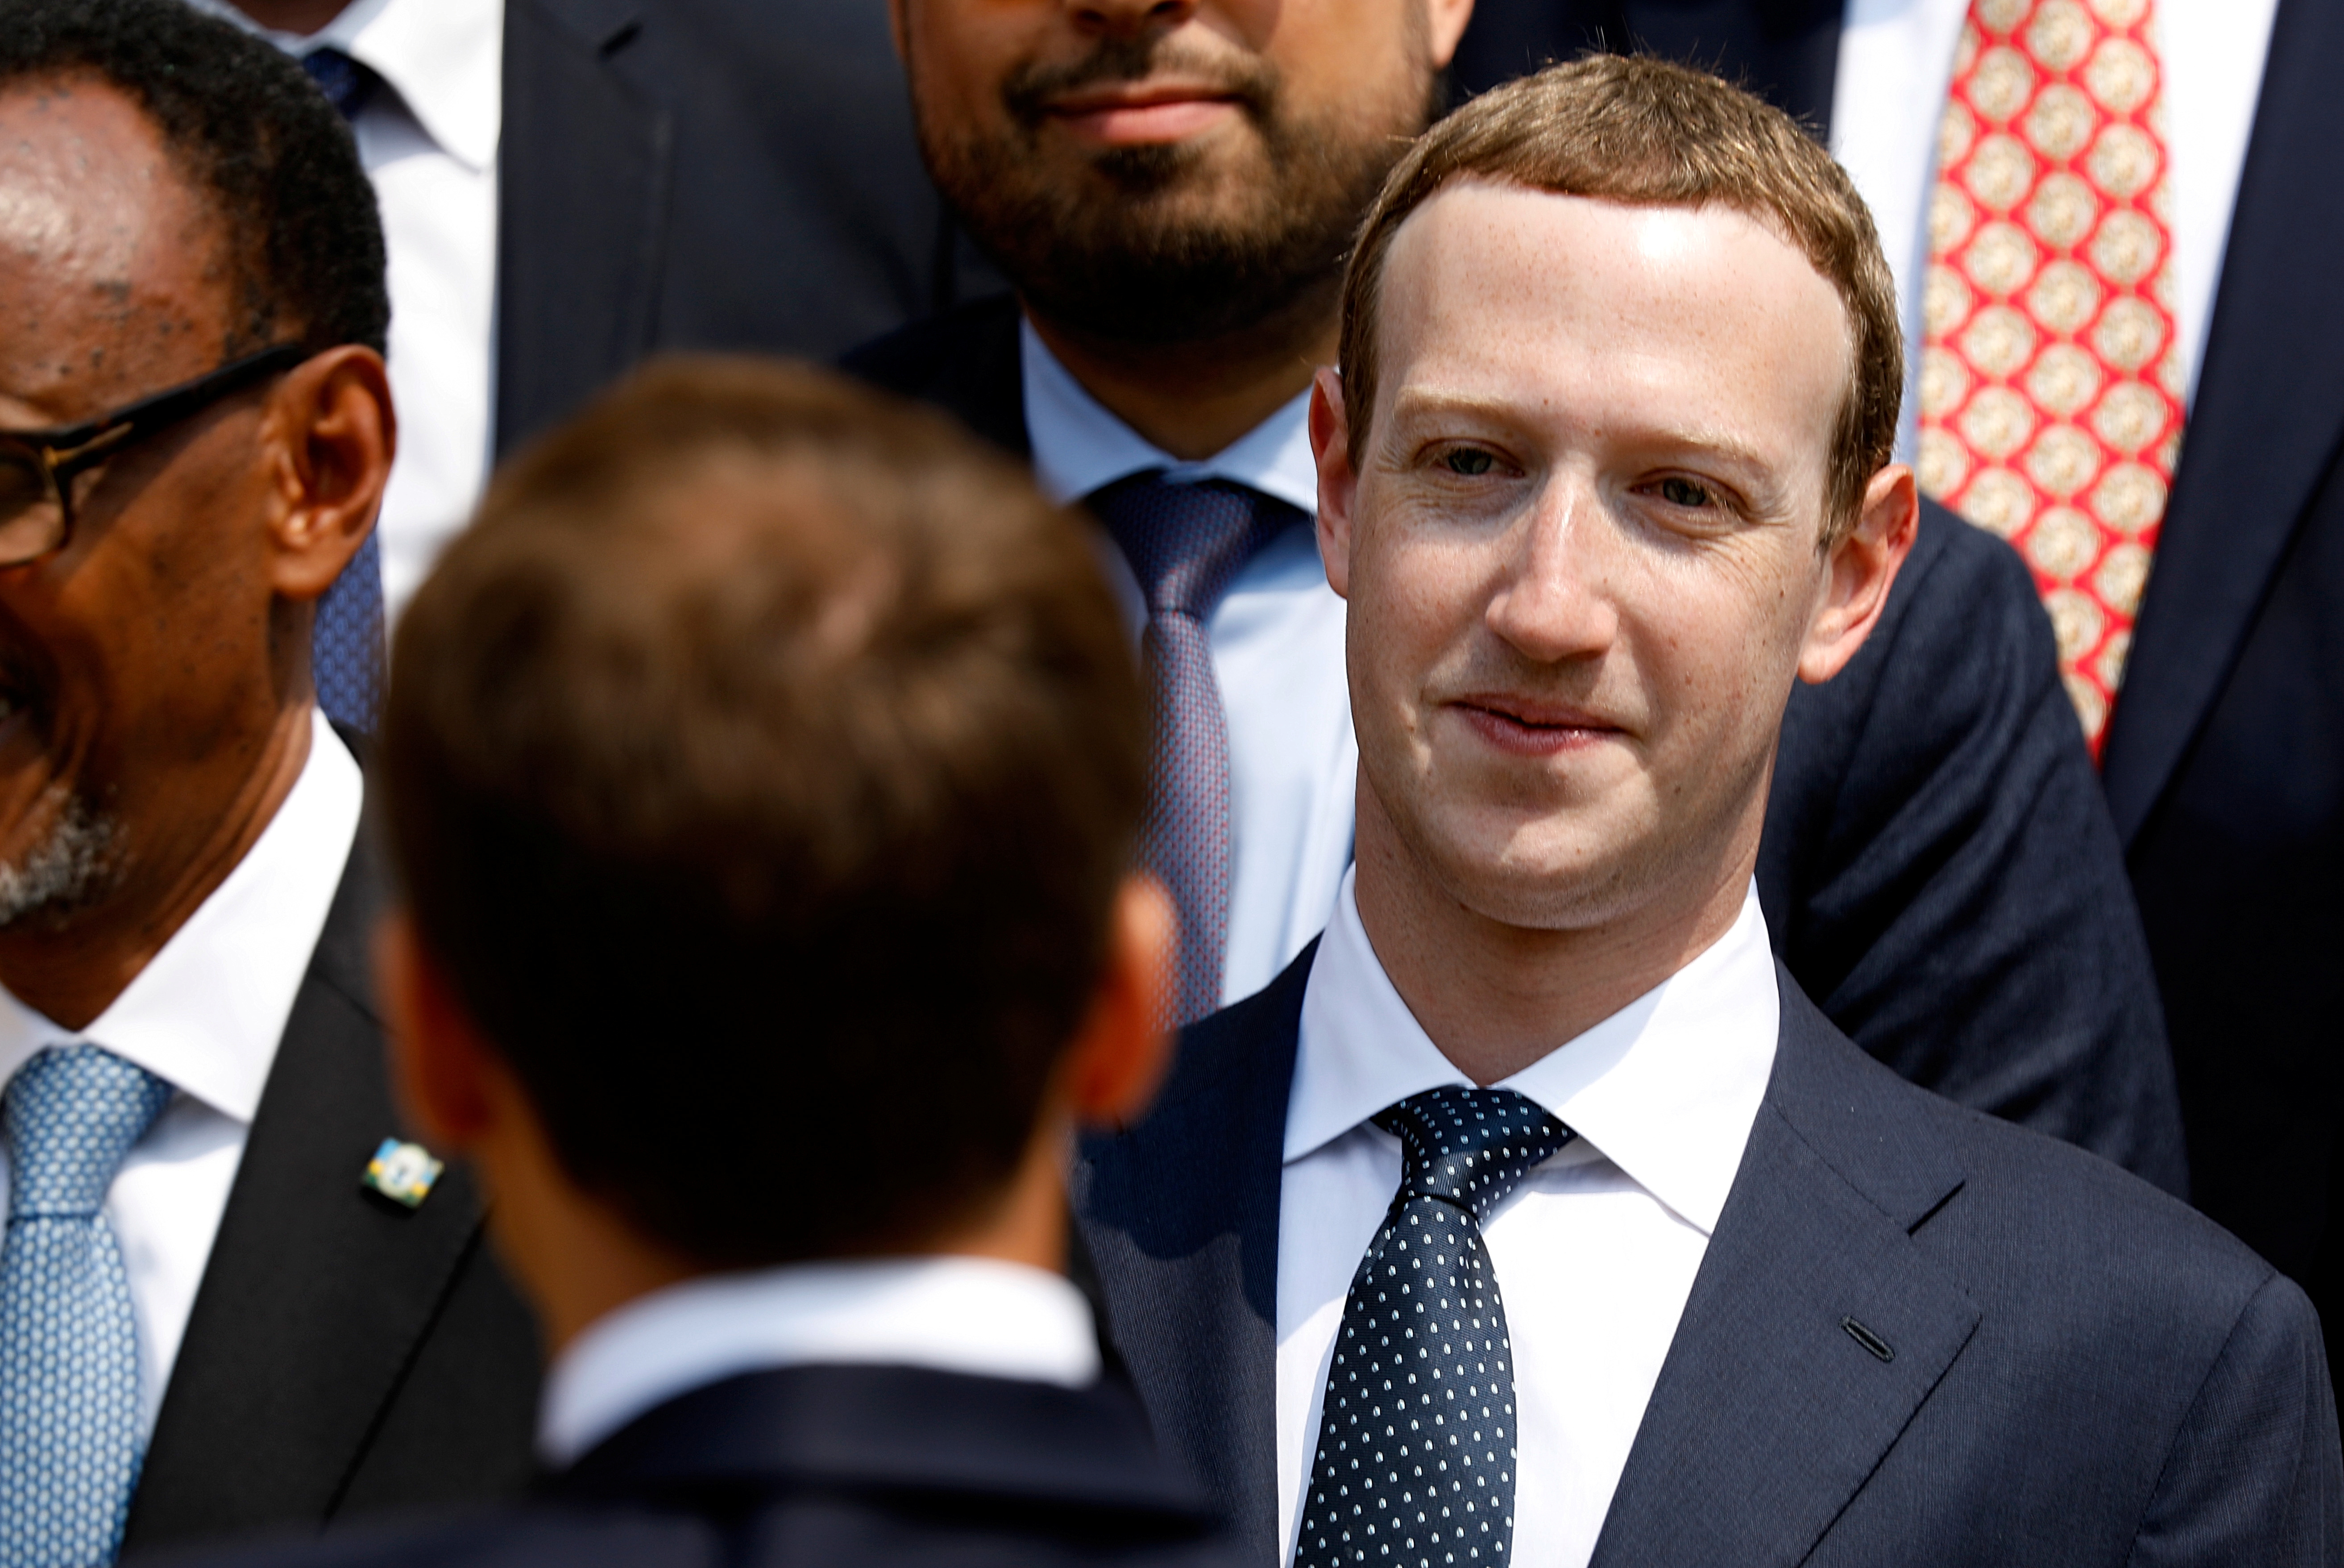 """Facebook's CEO Mark Zuckerberg listens to French President Emmanuel Macron after a family picture with guests of the """"Tech for Good Summit"""" at the Elysee Palace in Paris, France, May 23, 2018. REUTERS/Charles Platiau/Pool"""